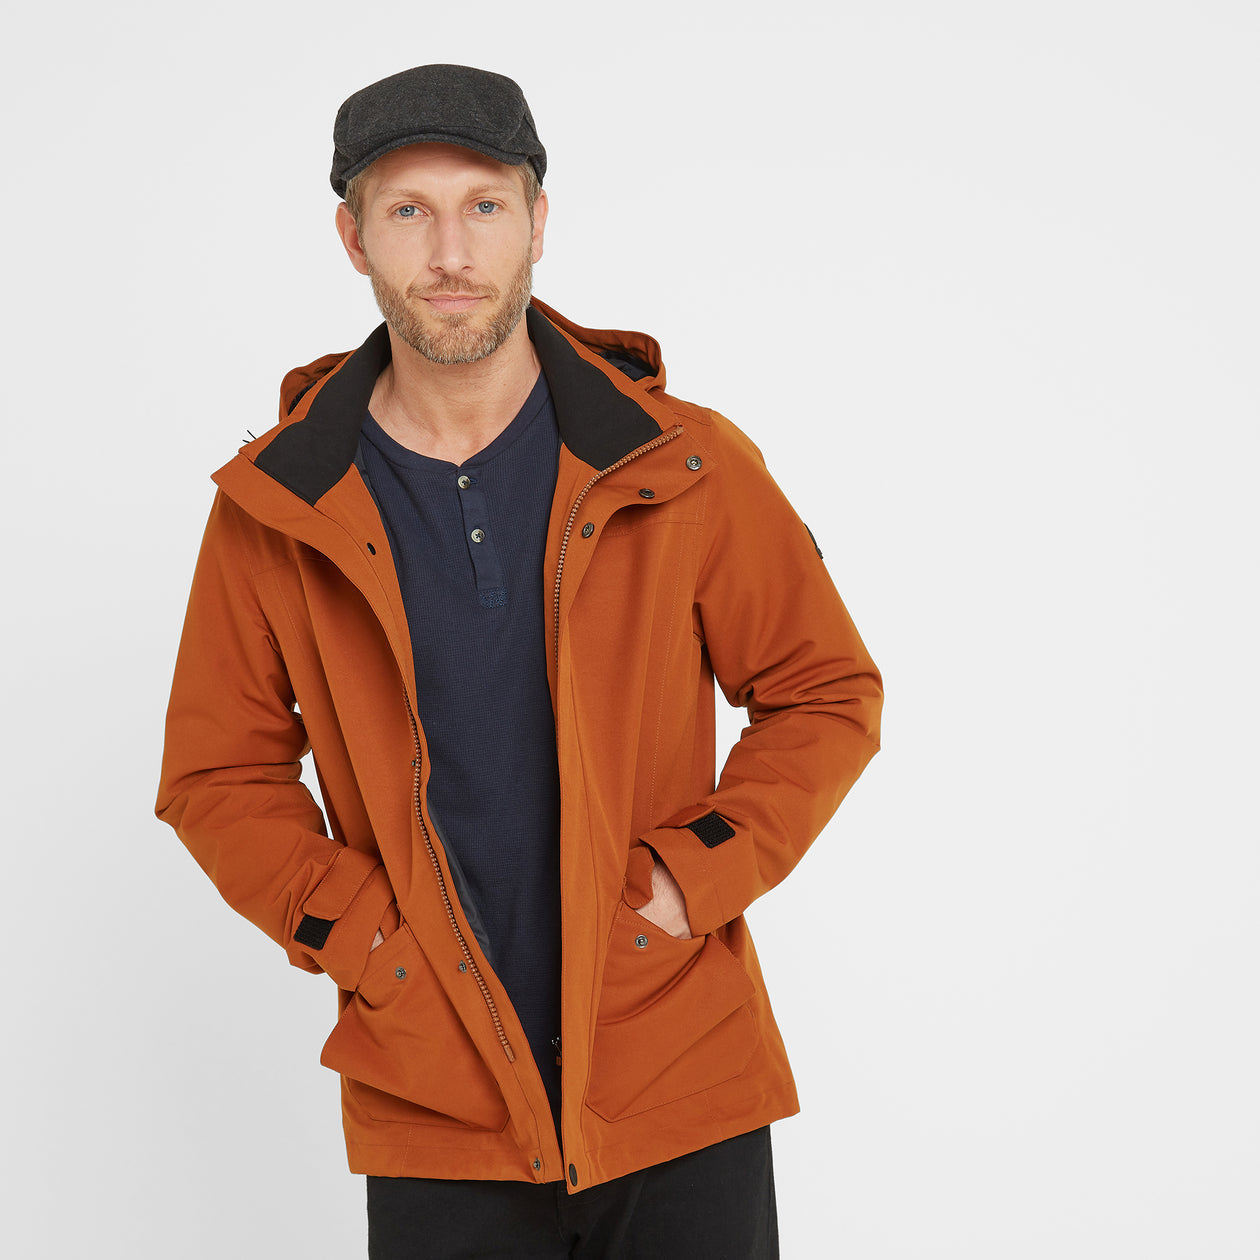 Beamsley Mens Waterproof Jacket - Amber image 4